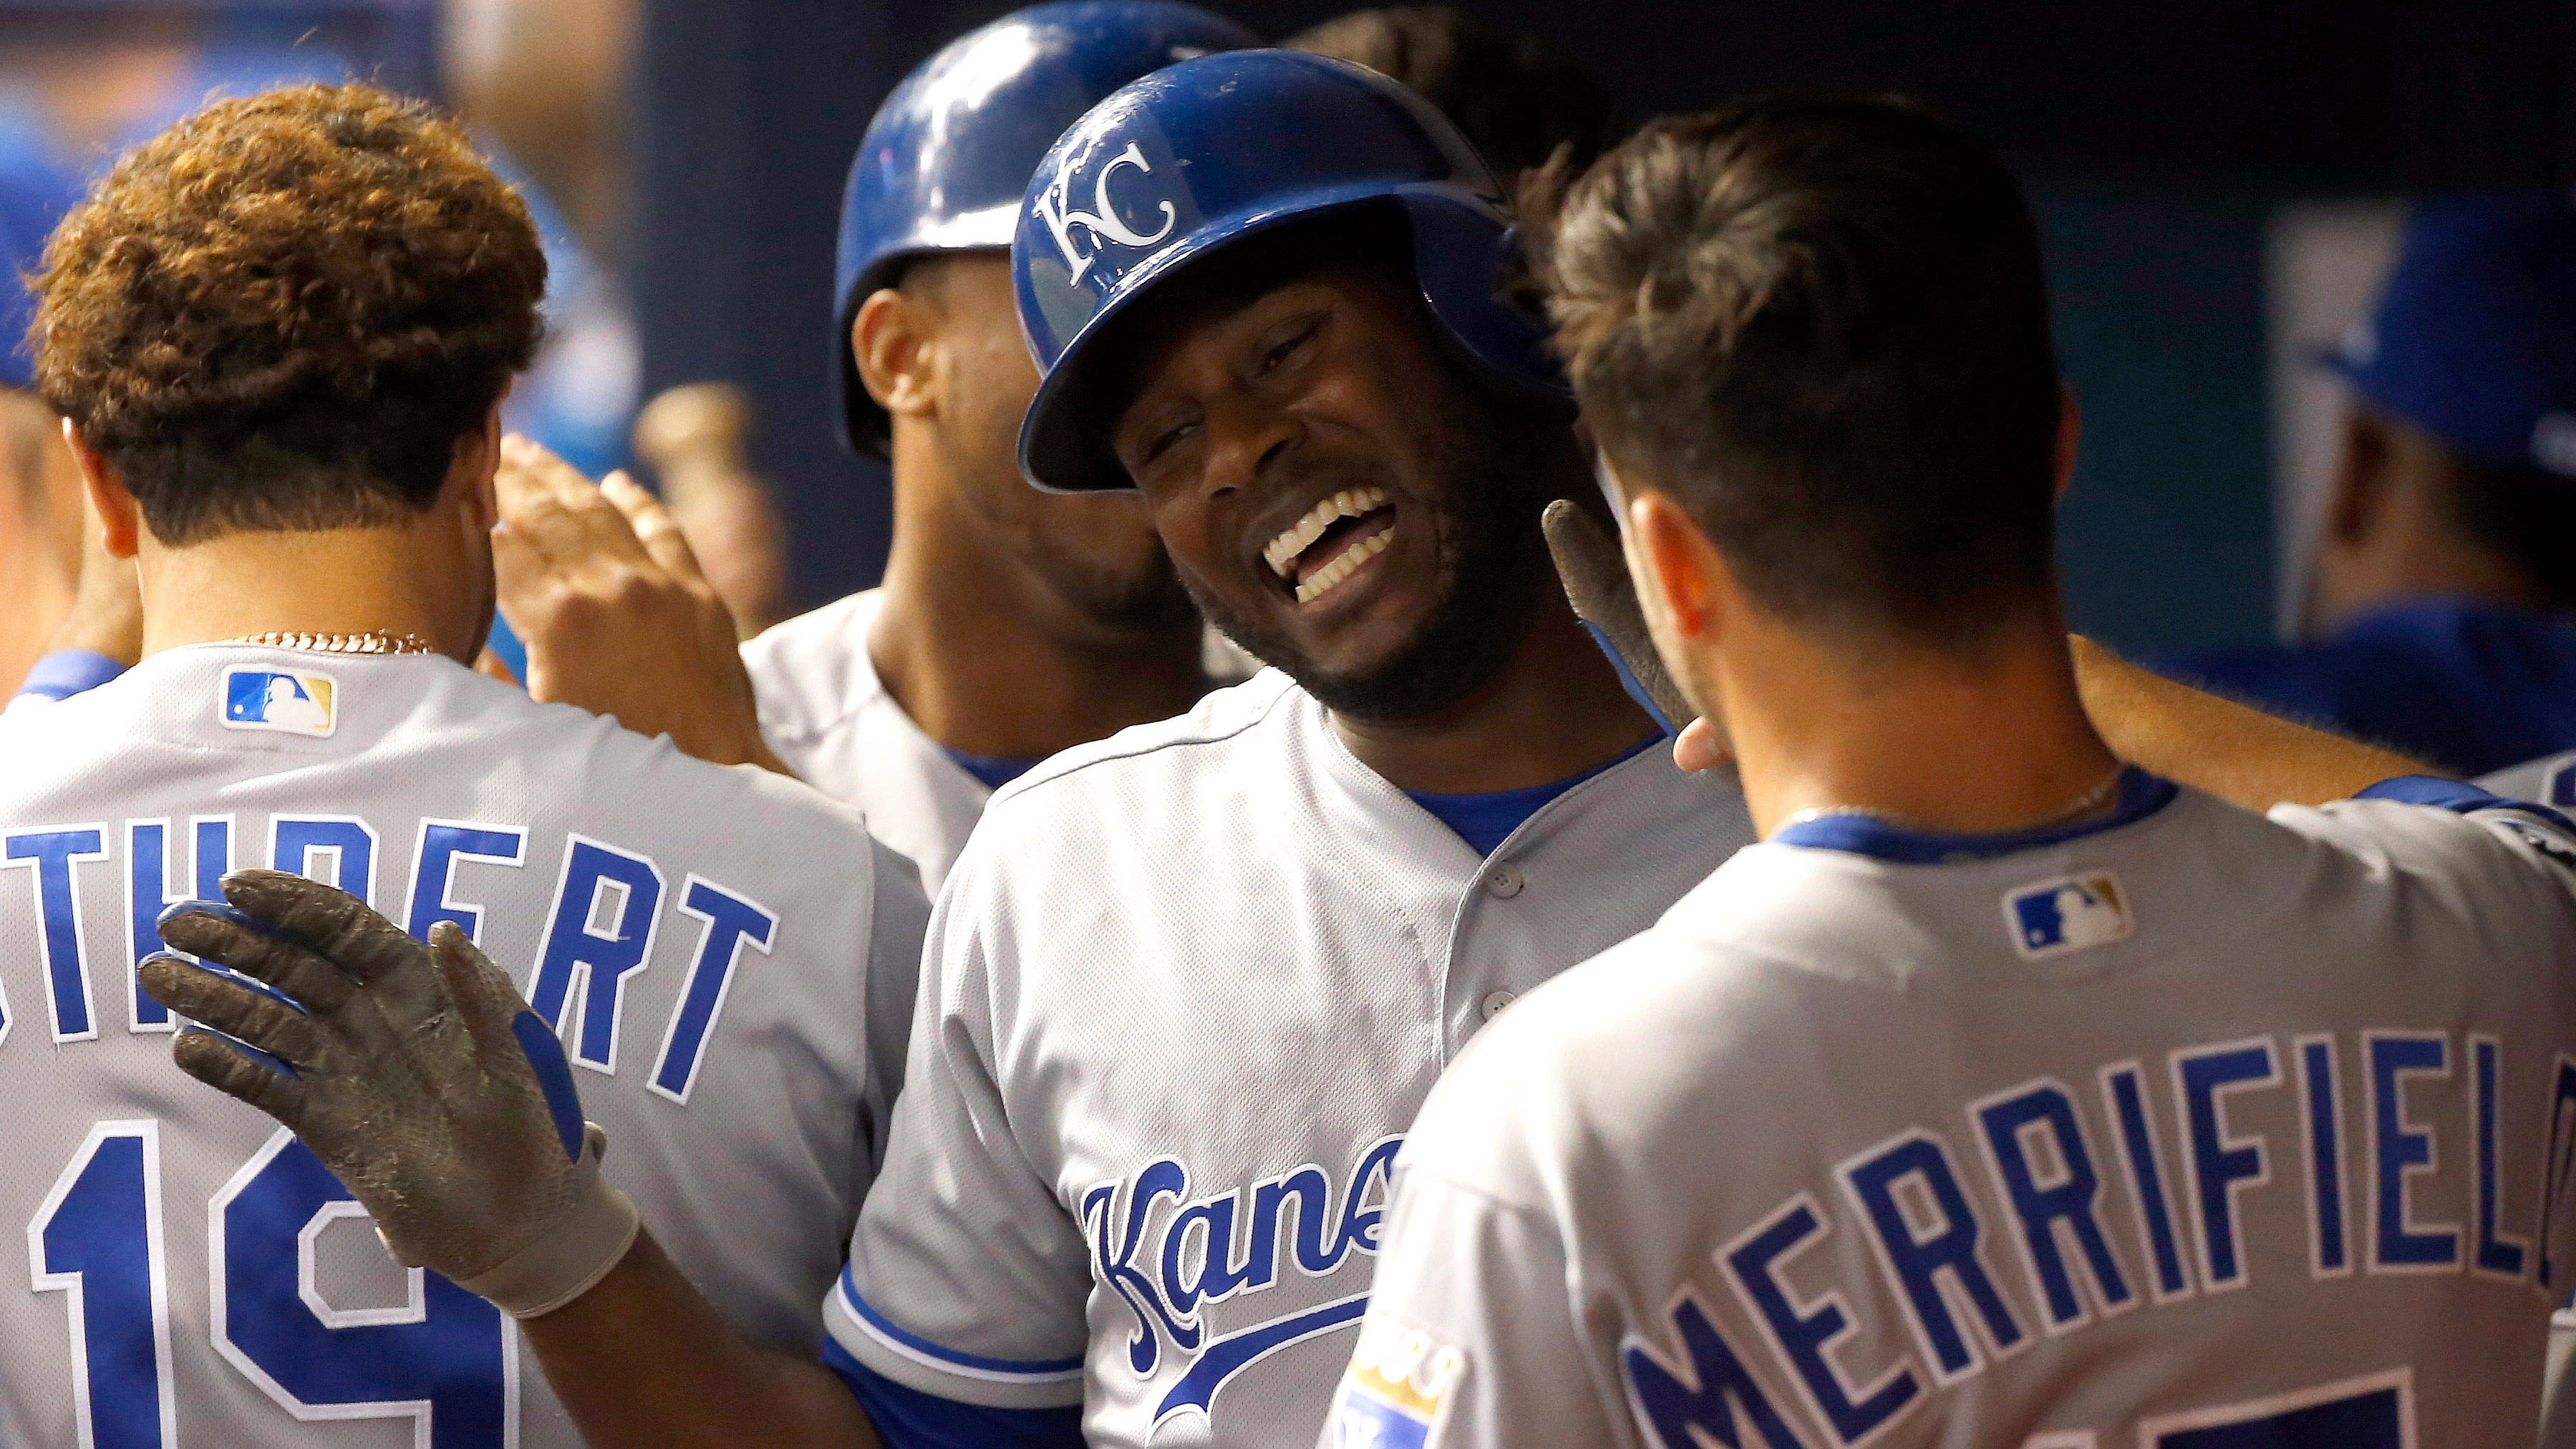 May 8, 2017; St. Petersburg, FL, USA; Kansas City Royals center fielder Lorenzo Cain (6) is congratulated by teammates in the dugout after he hit a in the park 2-RBI home run during the third inning against the Tampa Bay Rays at Tropicana Field. Mandatory Credit: Kim Klement-USA TODAY Sports